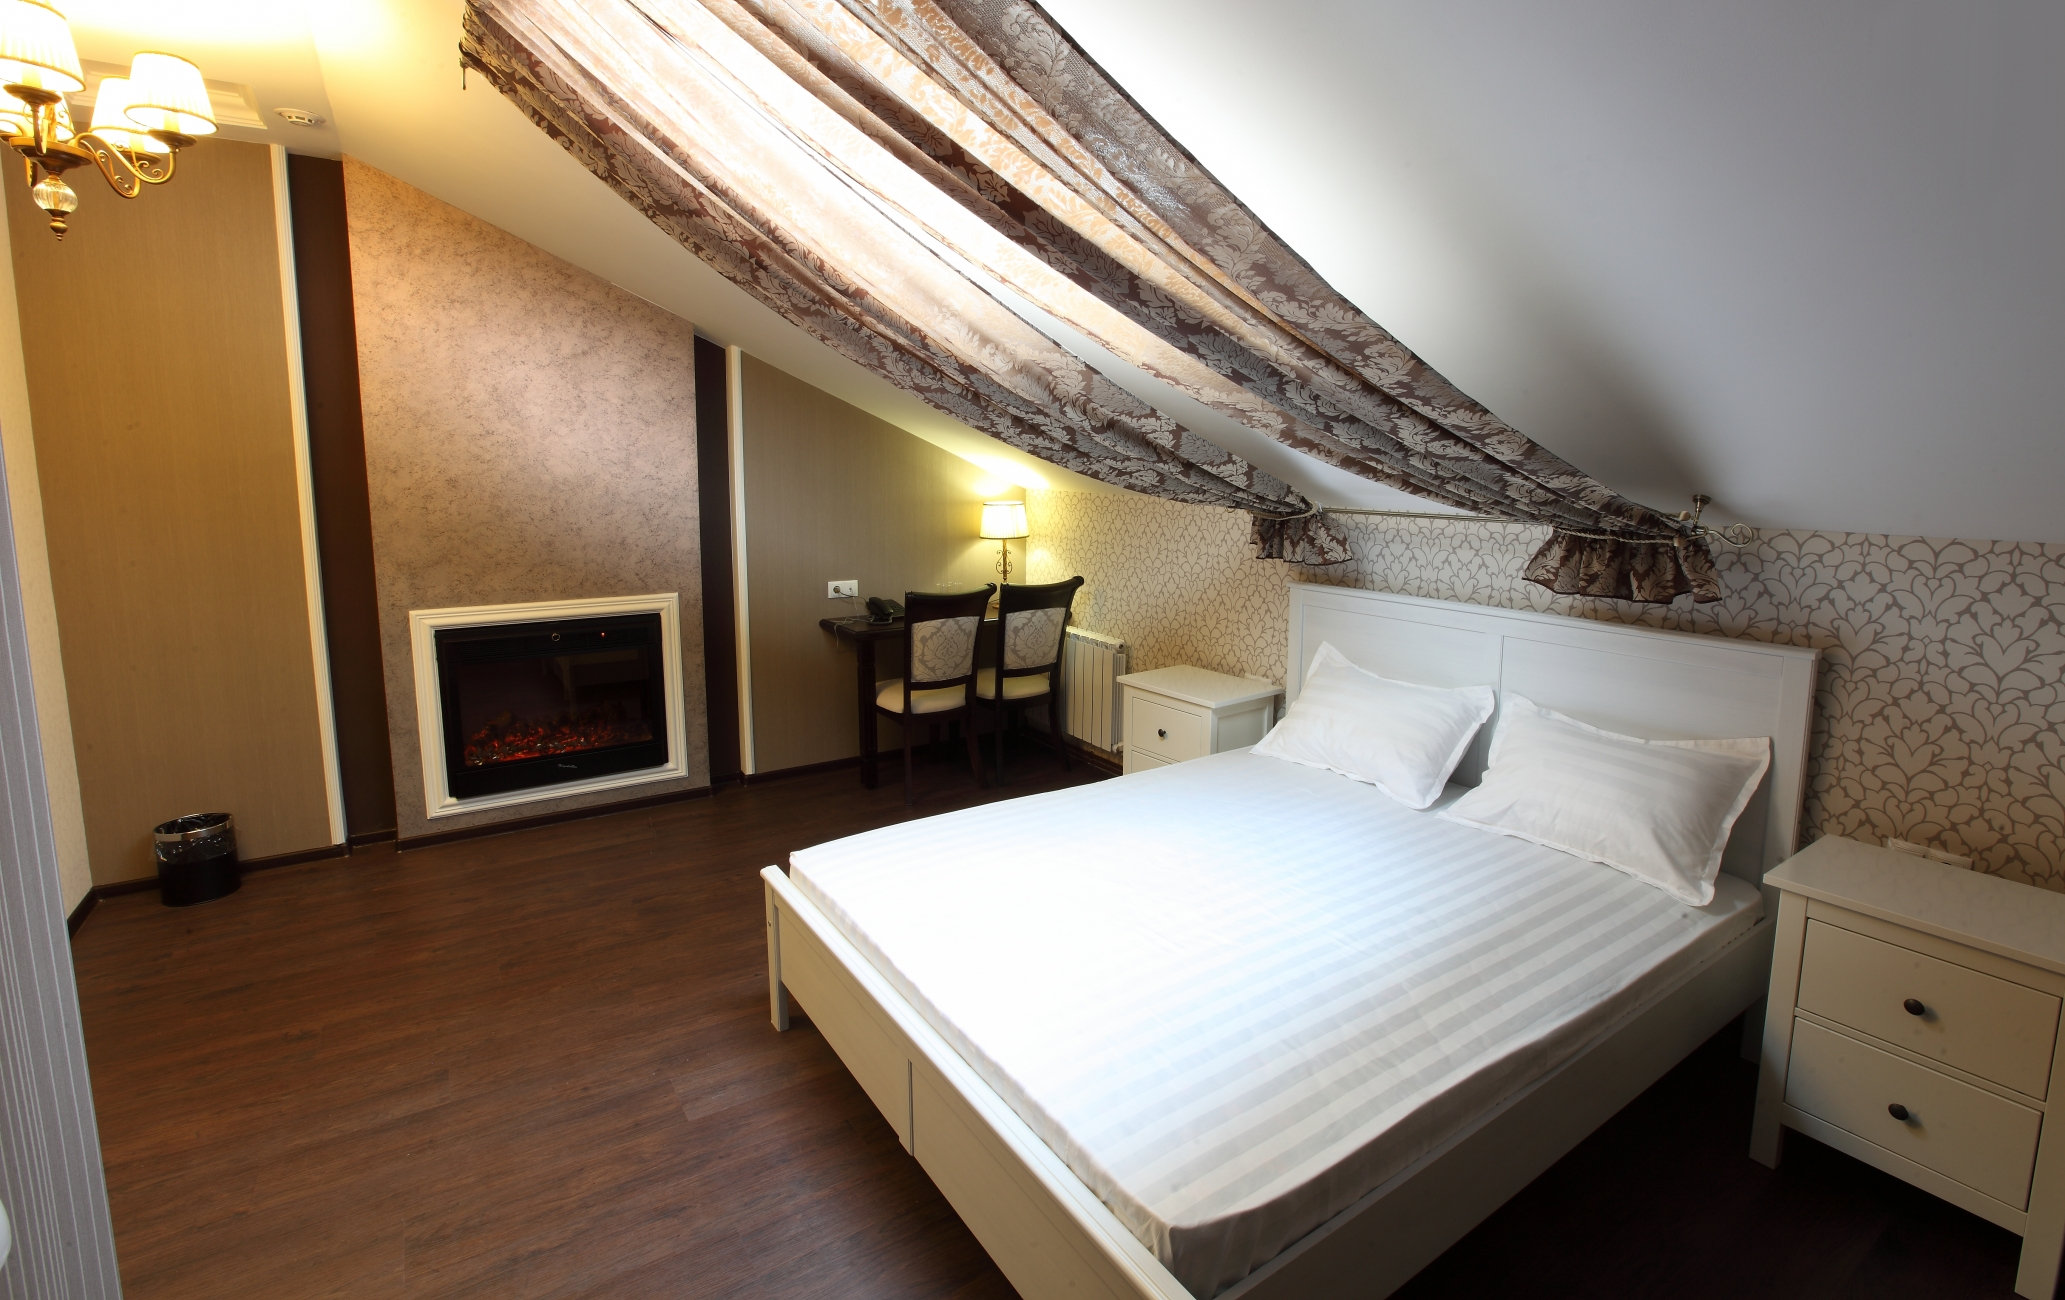 Hotel Merchants house. Habitacion estandar